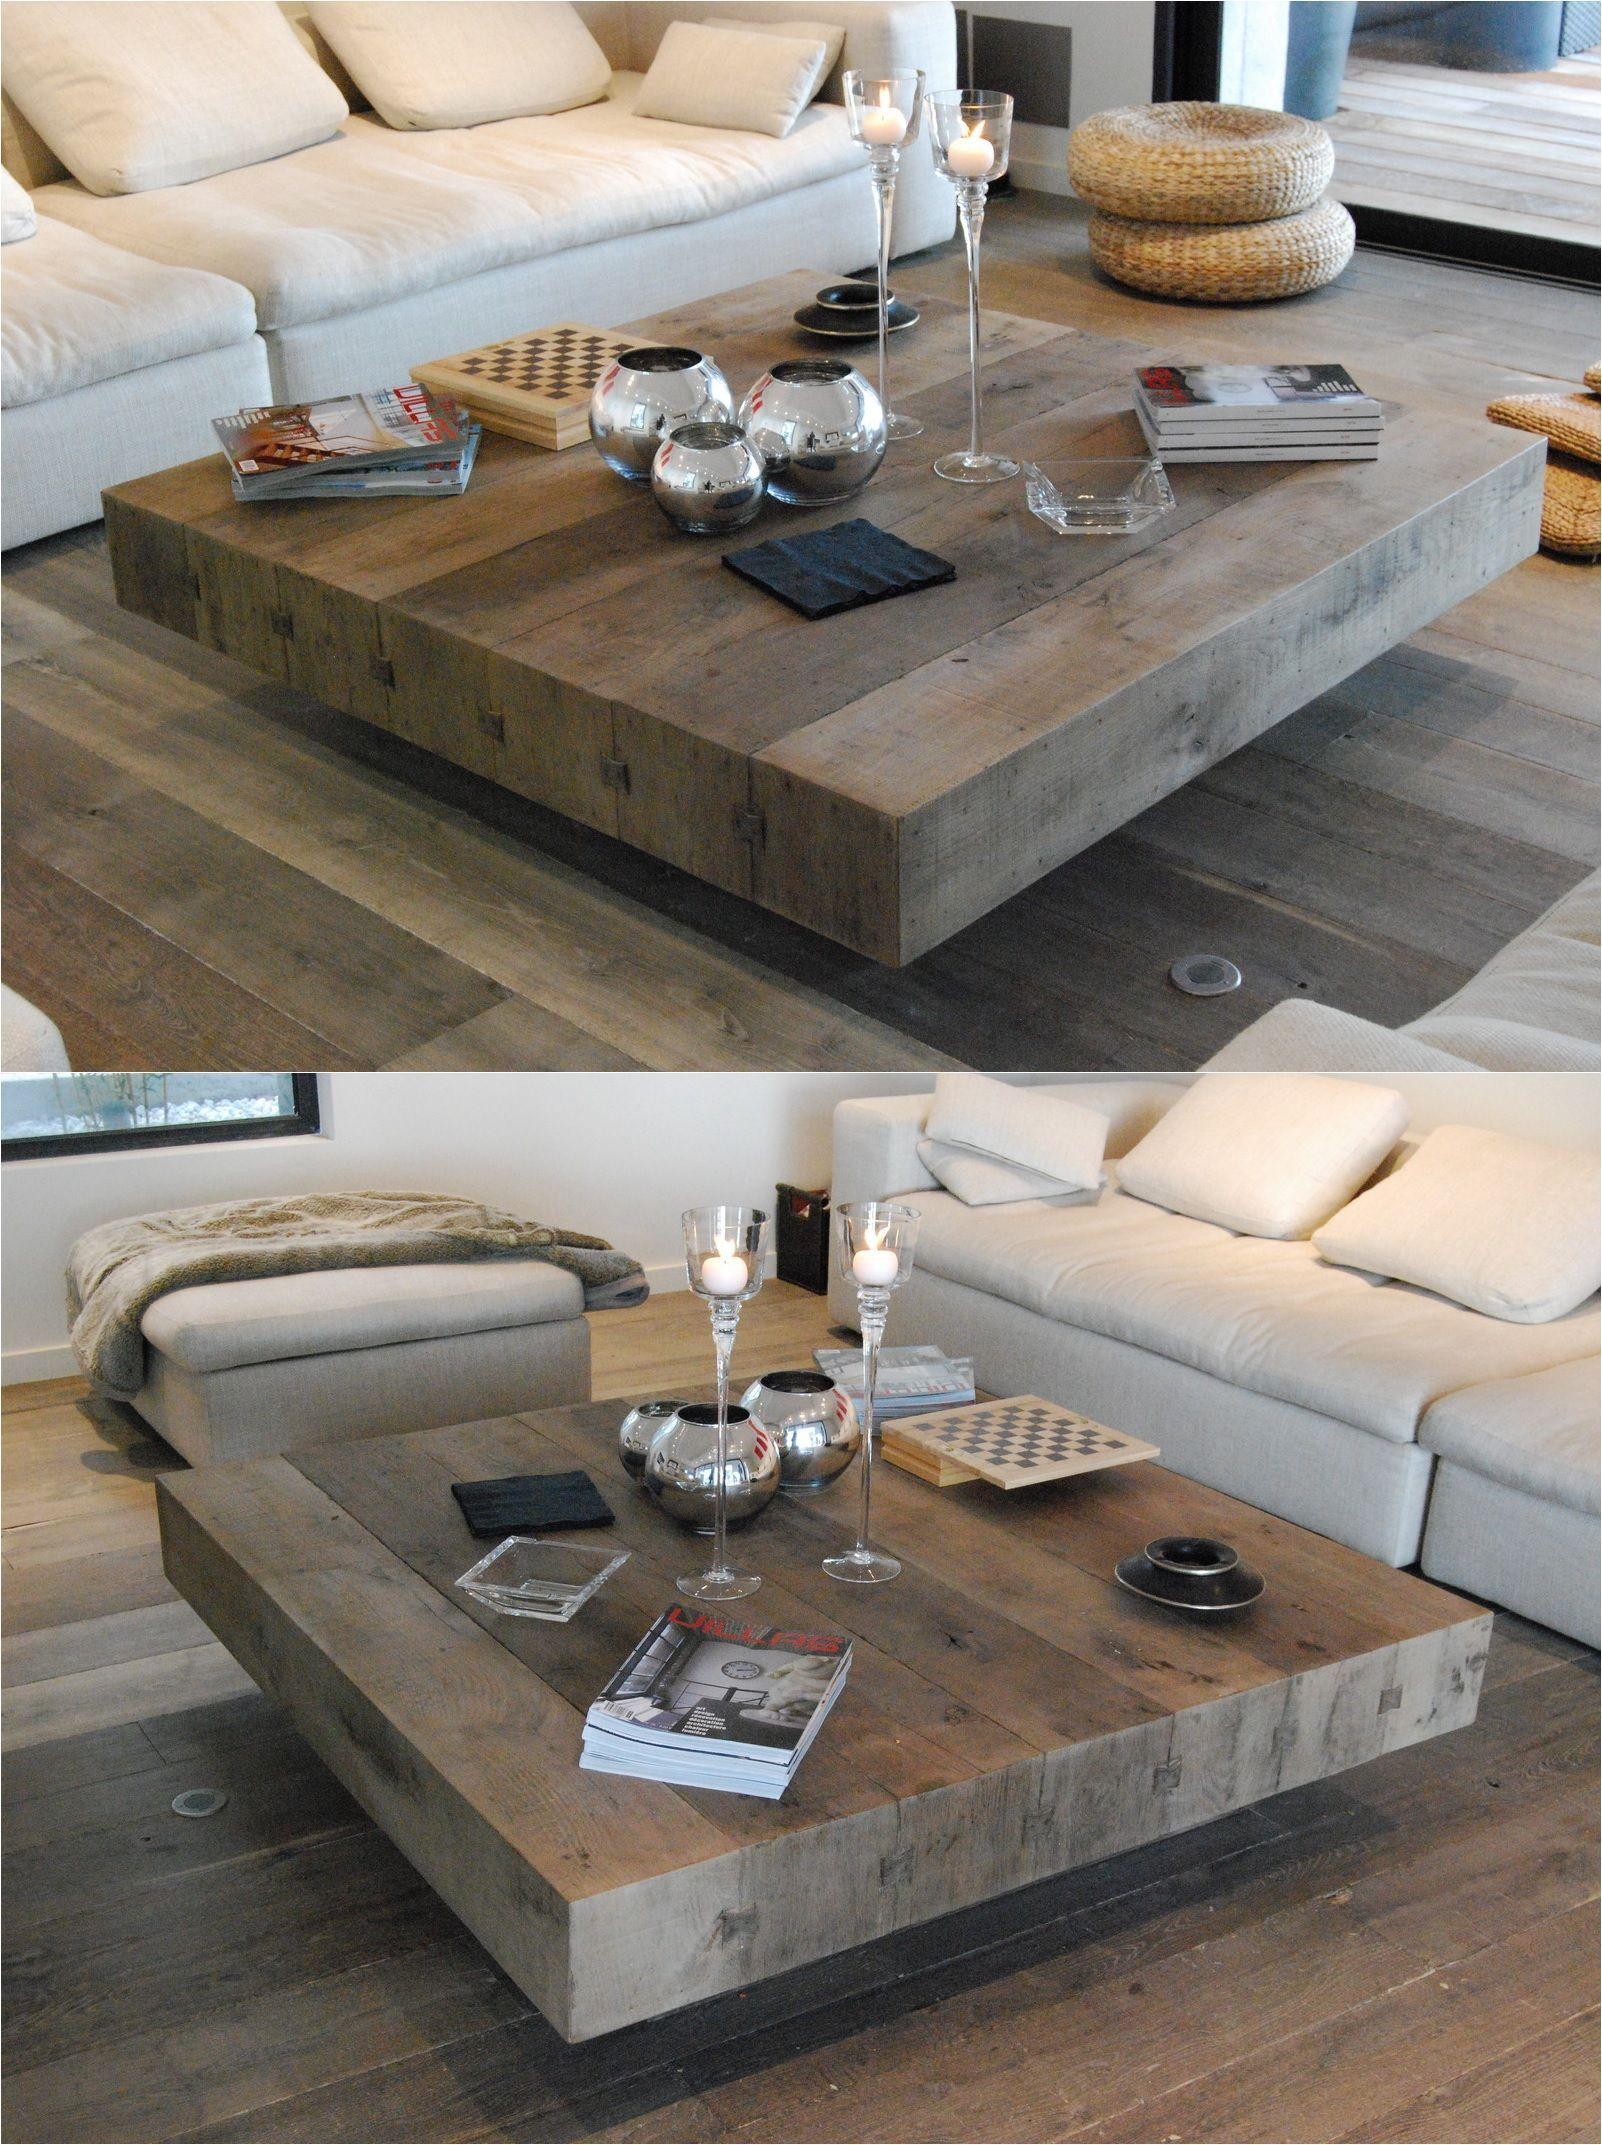 11 square coffee table with stools underneath pictures in